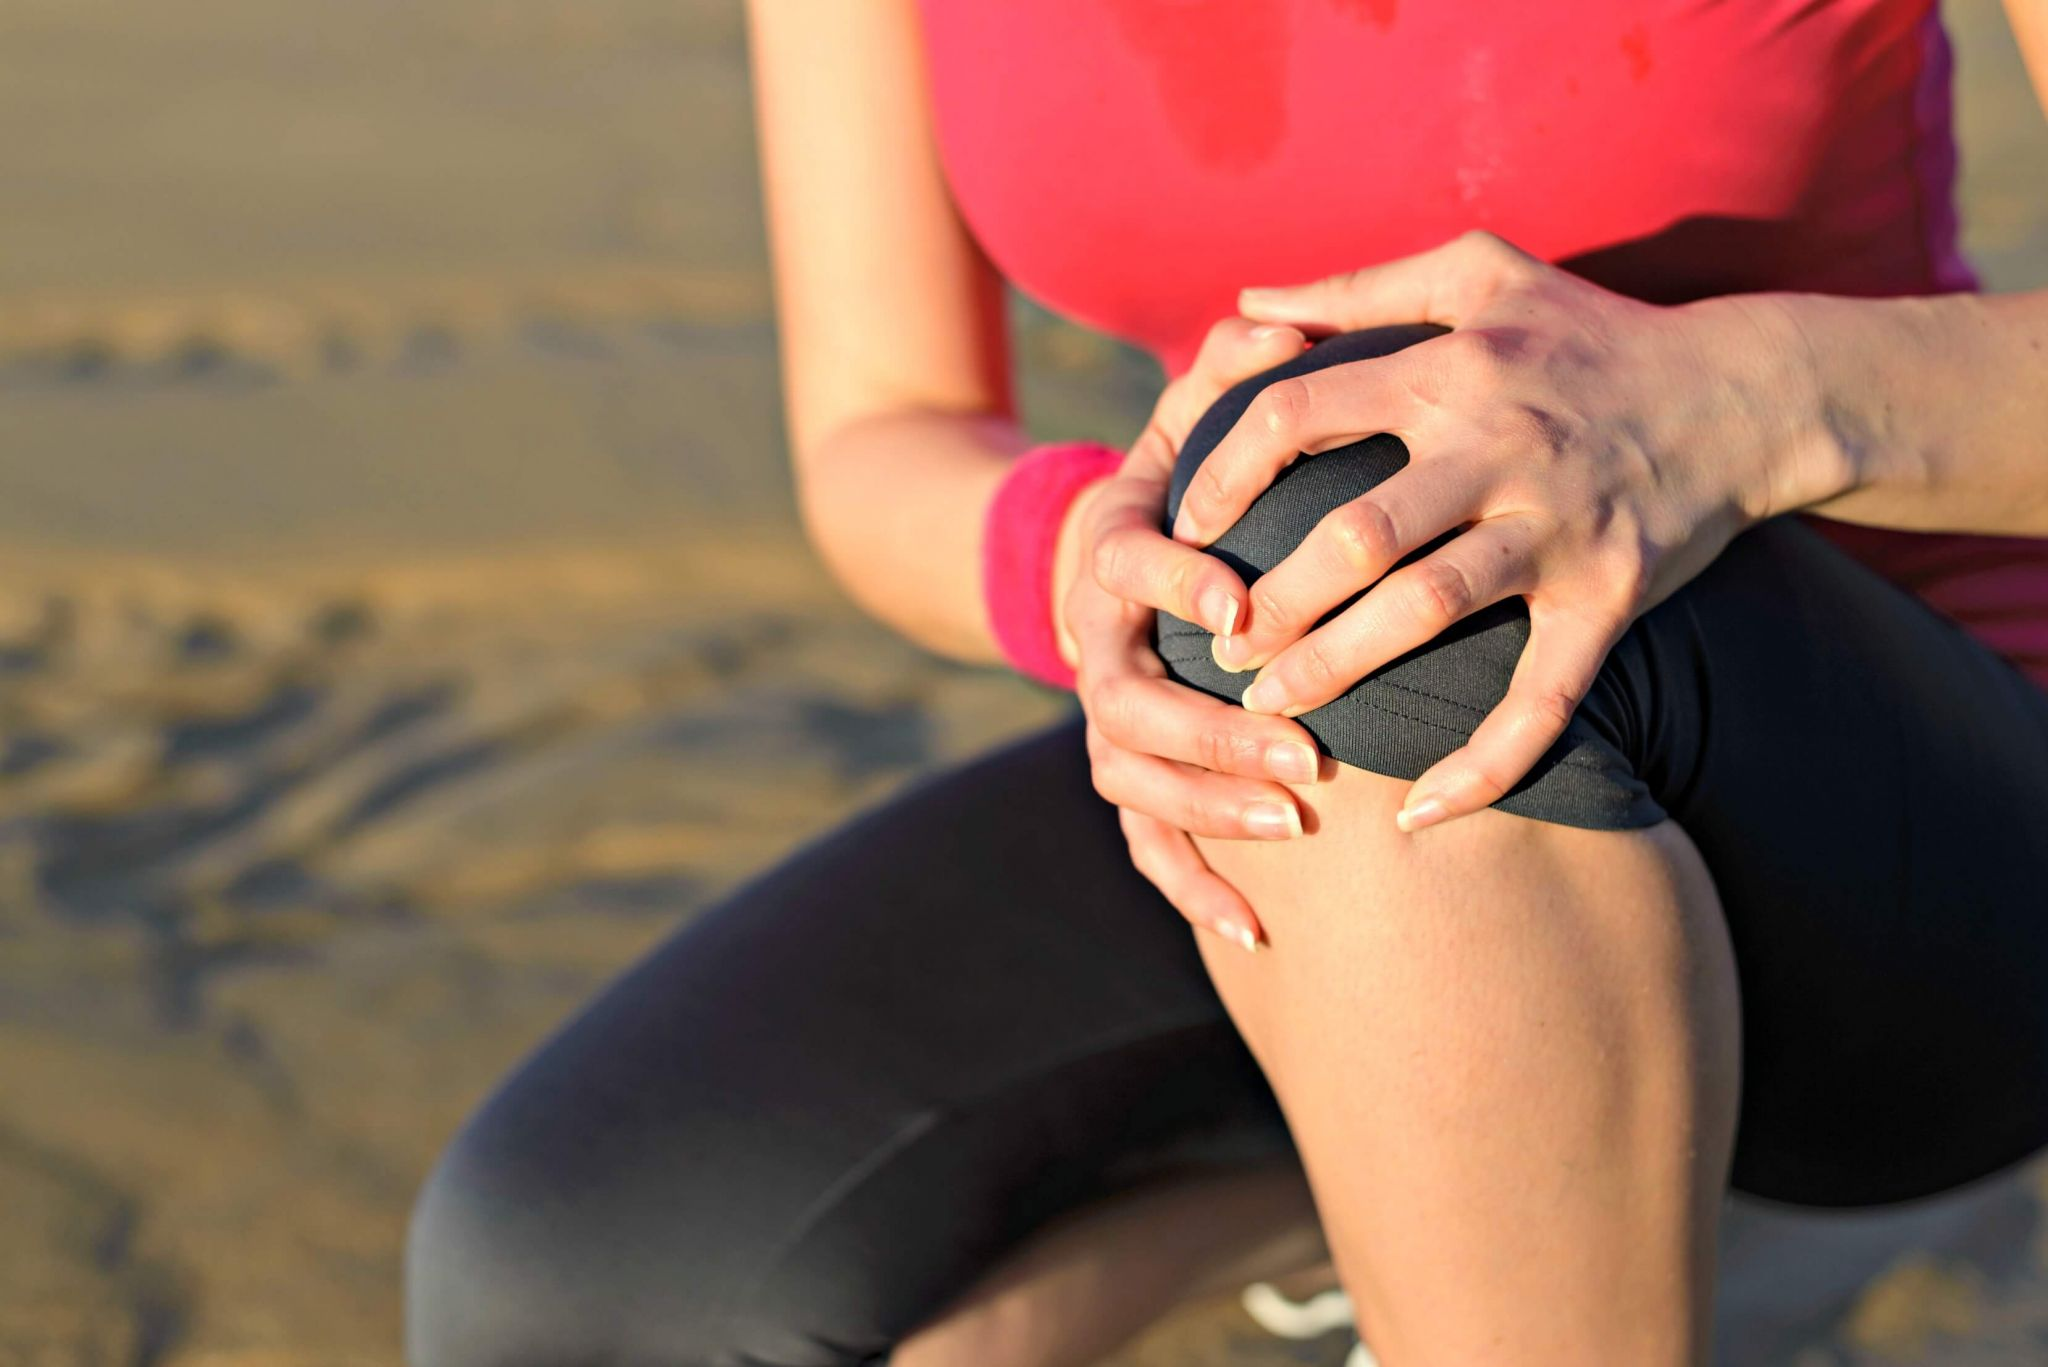 joint pain - woman runner holding her knee